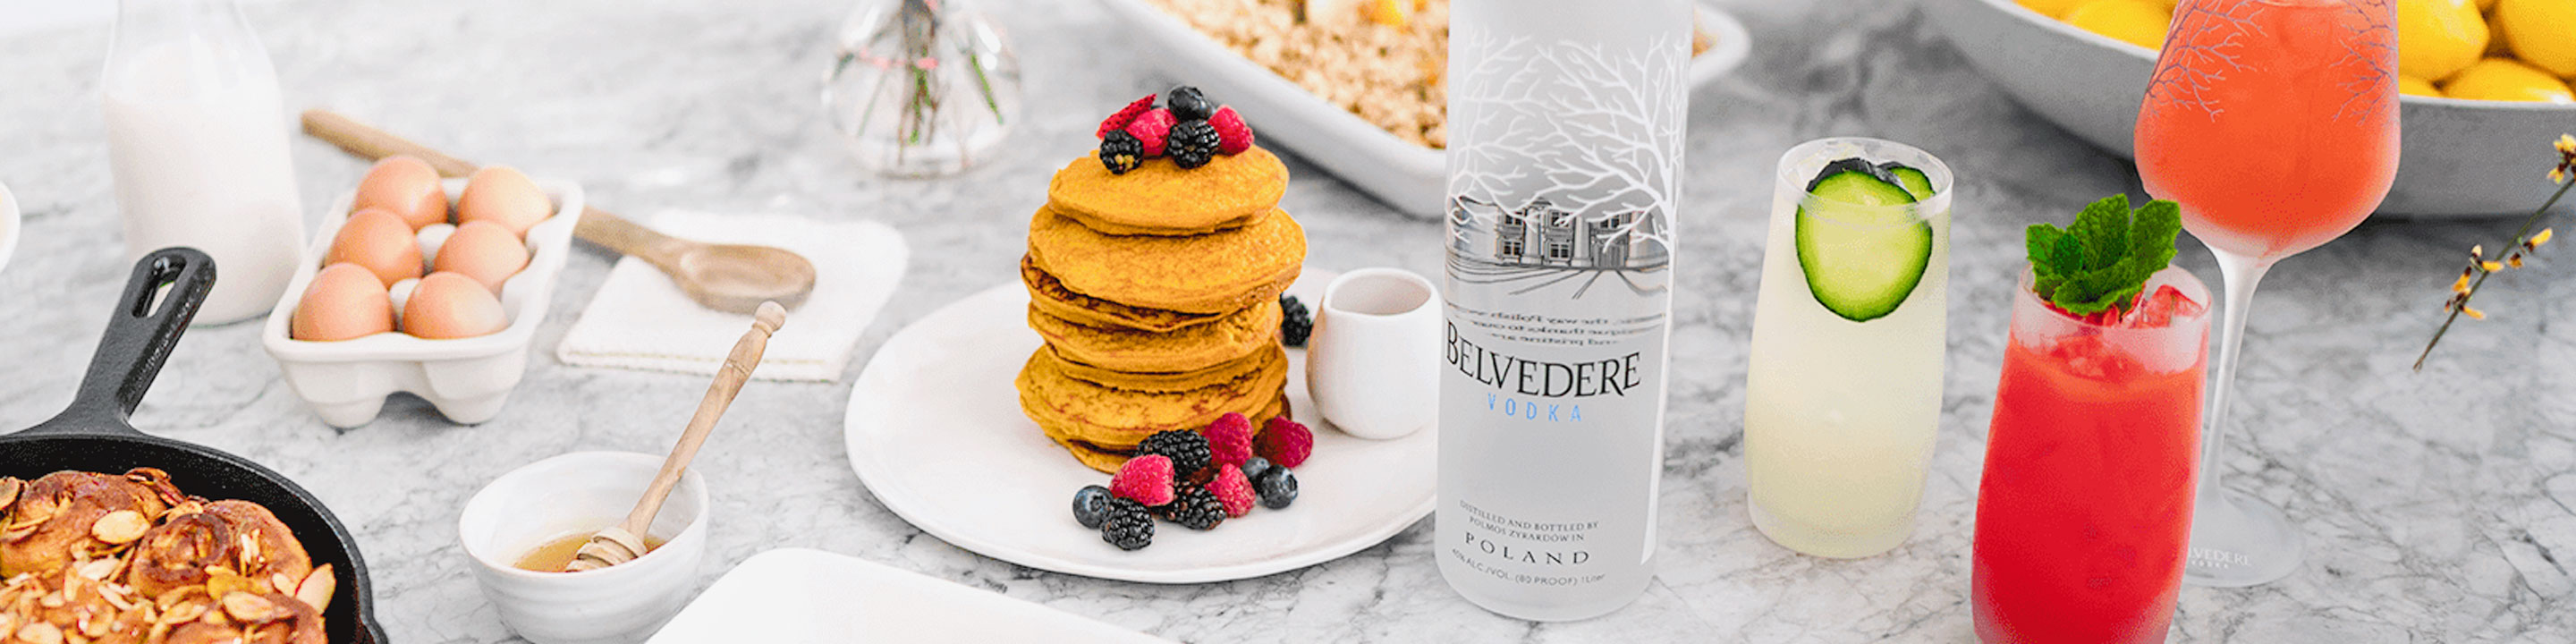 The house of Belvedere proudly uses only natural ingredients in its vodka - Polish rye and water - locally sourced in accordance with the country's rigorous guidelines. The same rules apply to the house's macerated vodkas, made with natural fruits and botanicals.